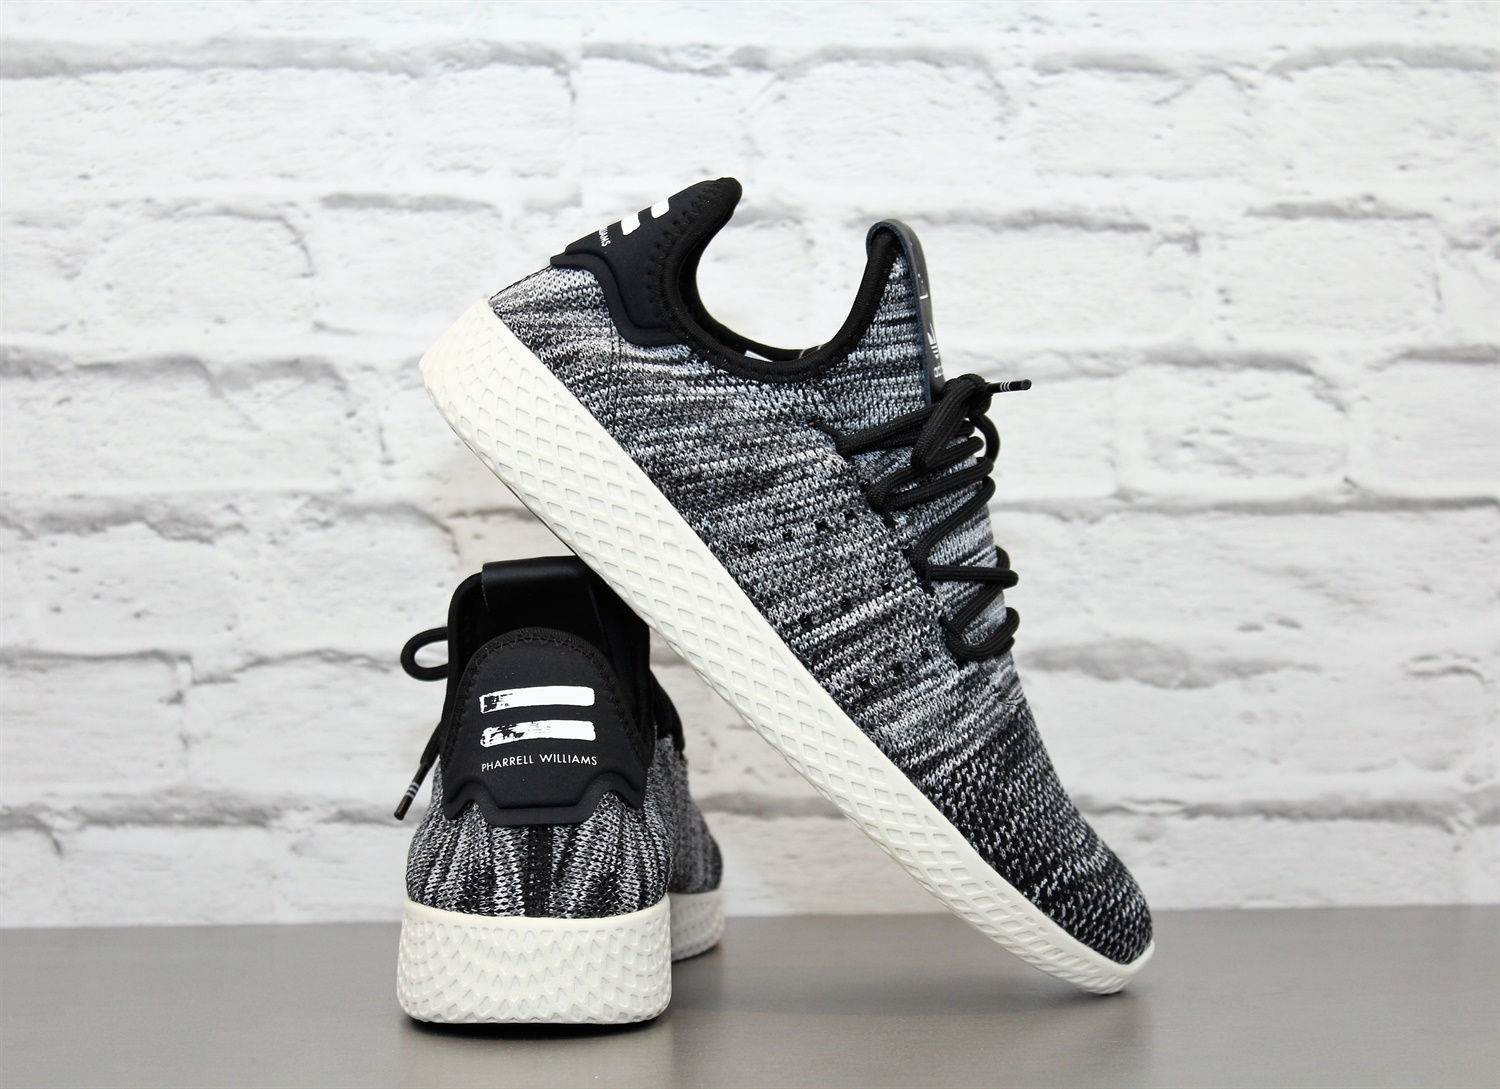 61cd7e167f9cd Adidas PW Tennis Hu Pk cq2630 Trainers Pharrell Williams Shoes NEW ...